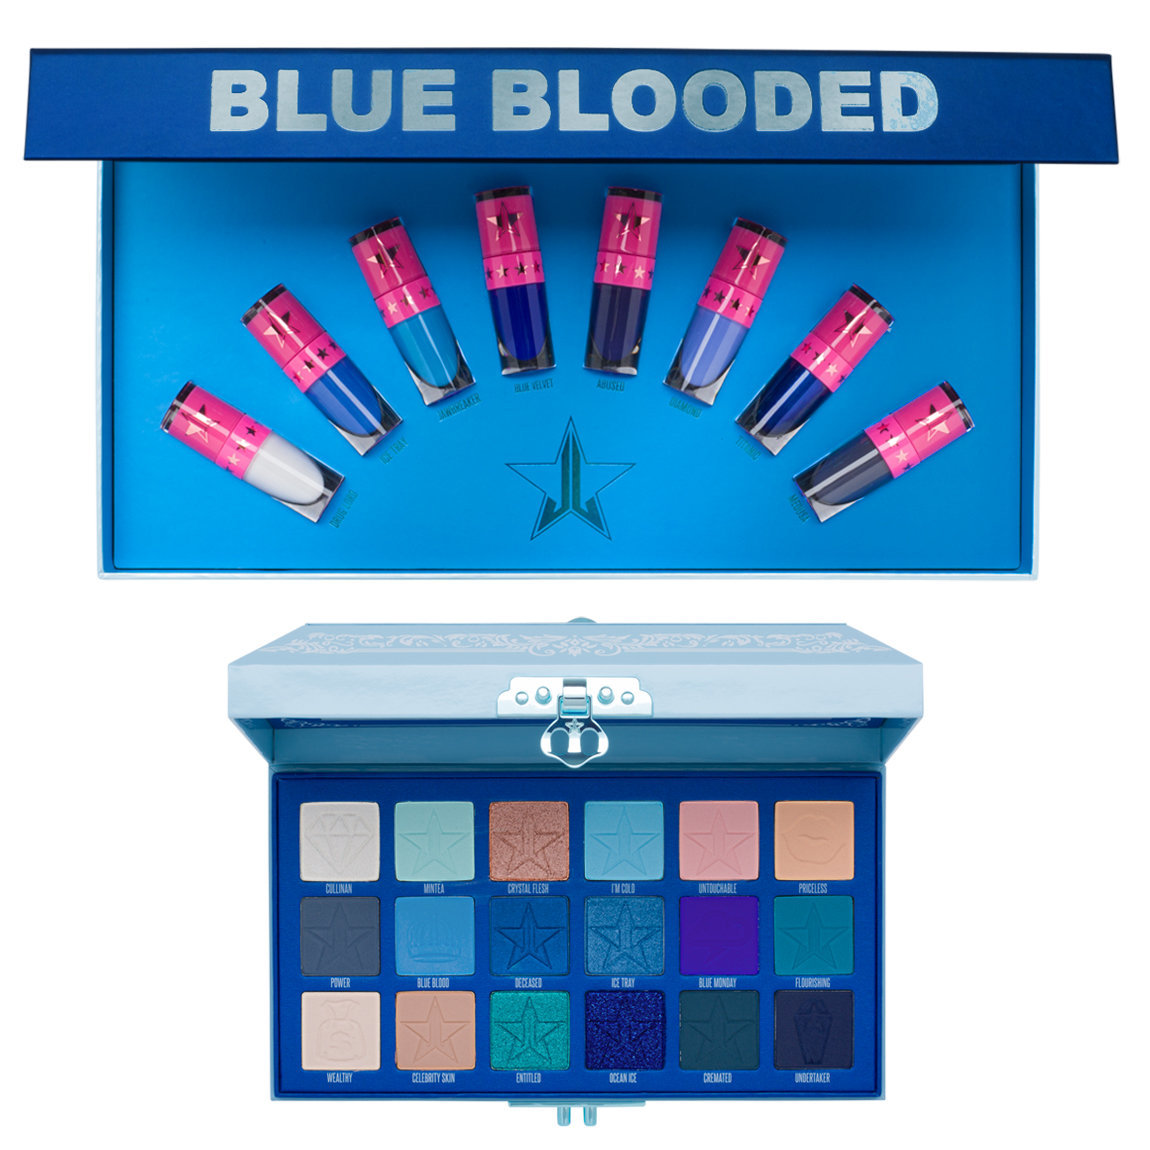 Jeffree Star Cosmetics Blue Blood Eyeshadow Palette & Mini Blue Blood Bundle product swatch.